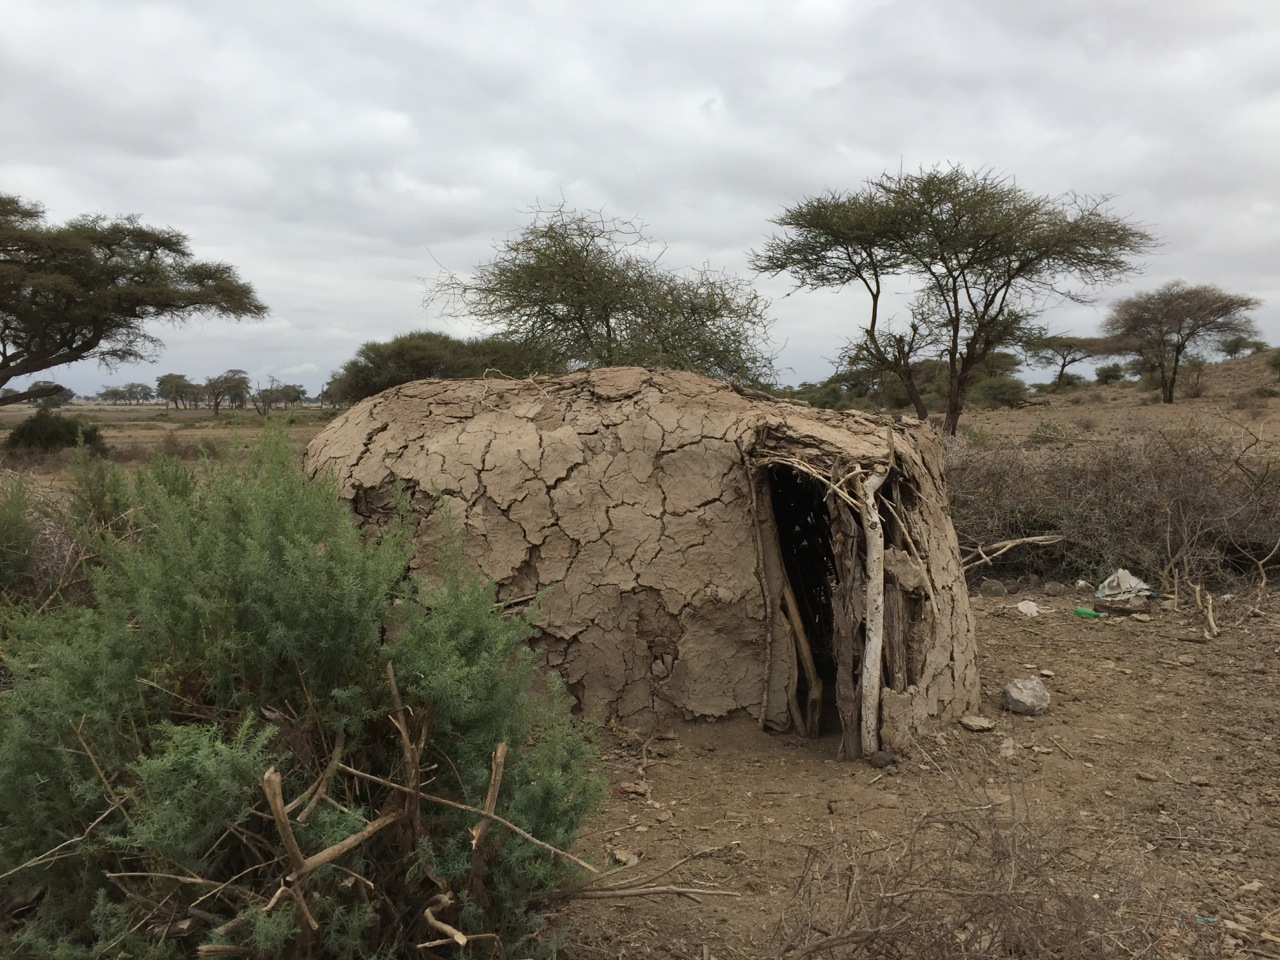 A Masai hut in the Kilimanjaro foothills.